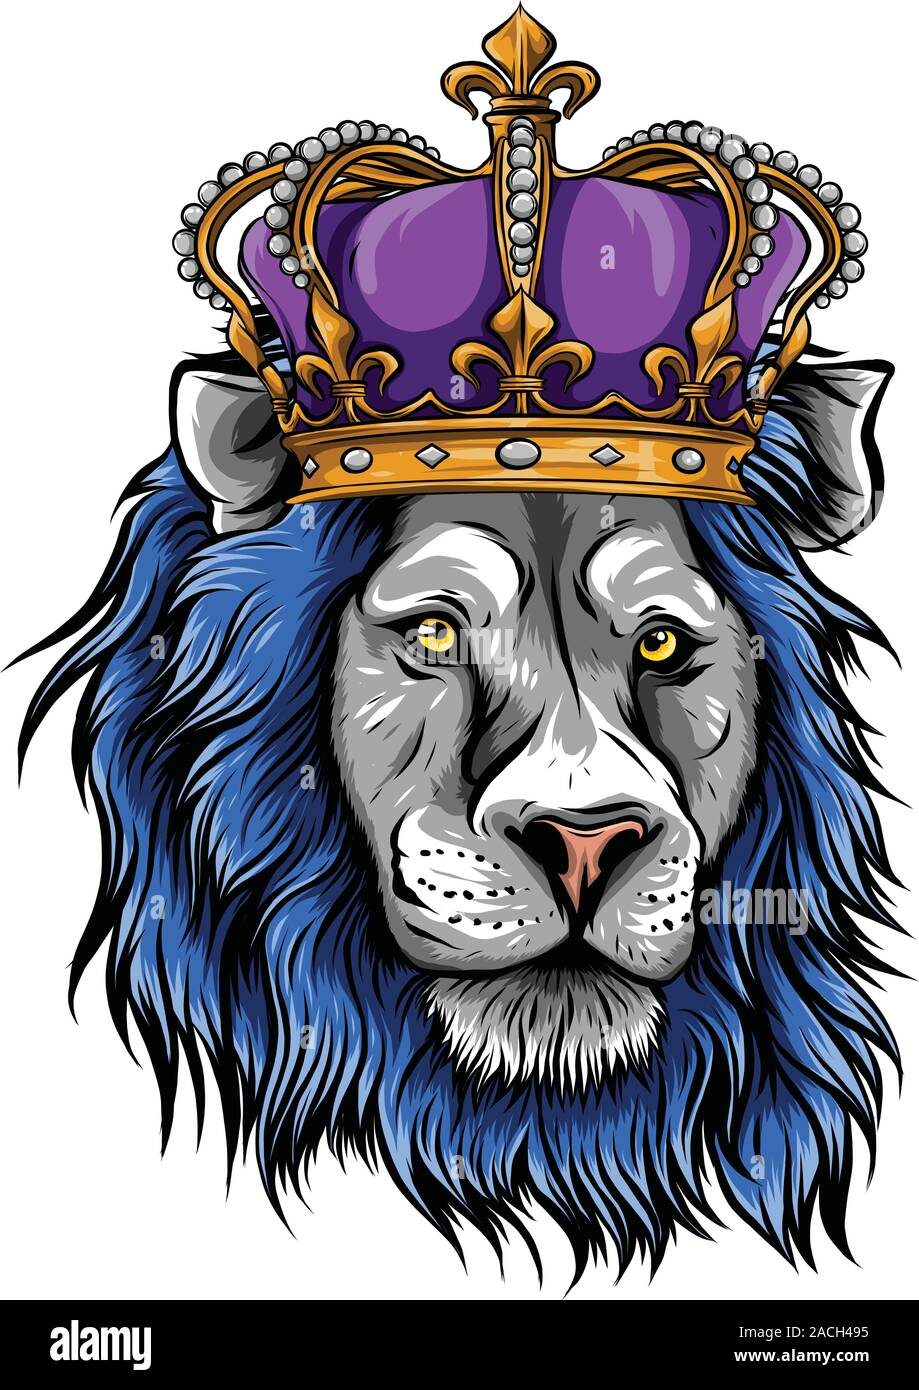 Vector Illustration The Lion King The Head Of A Lion In The Crown On A White Background Stock Vector Image Art Alamy